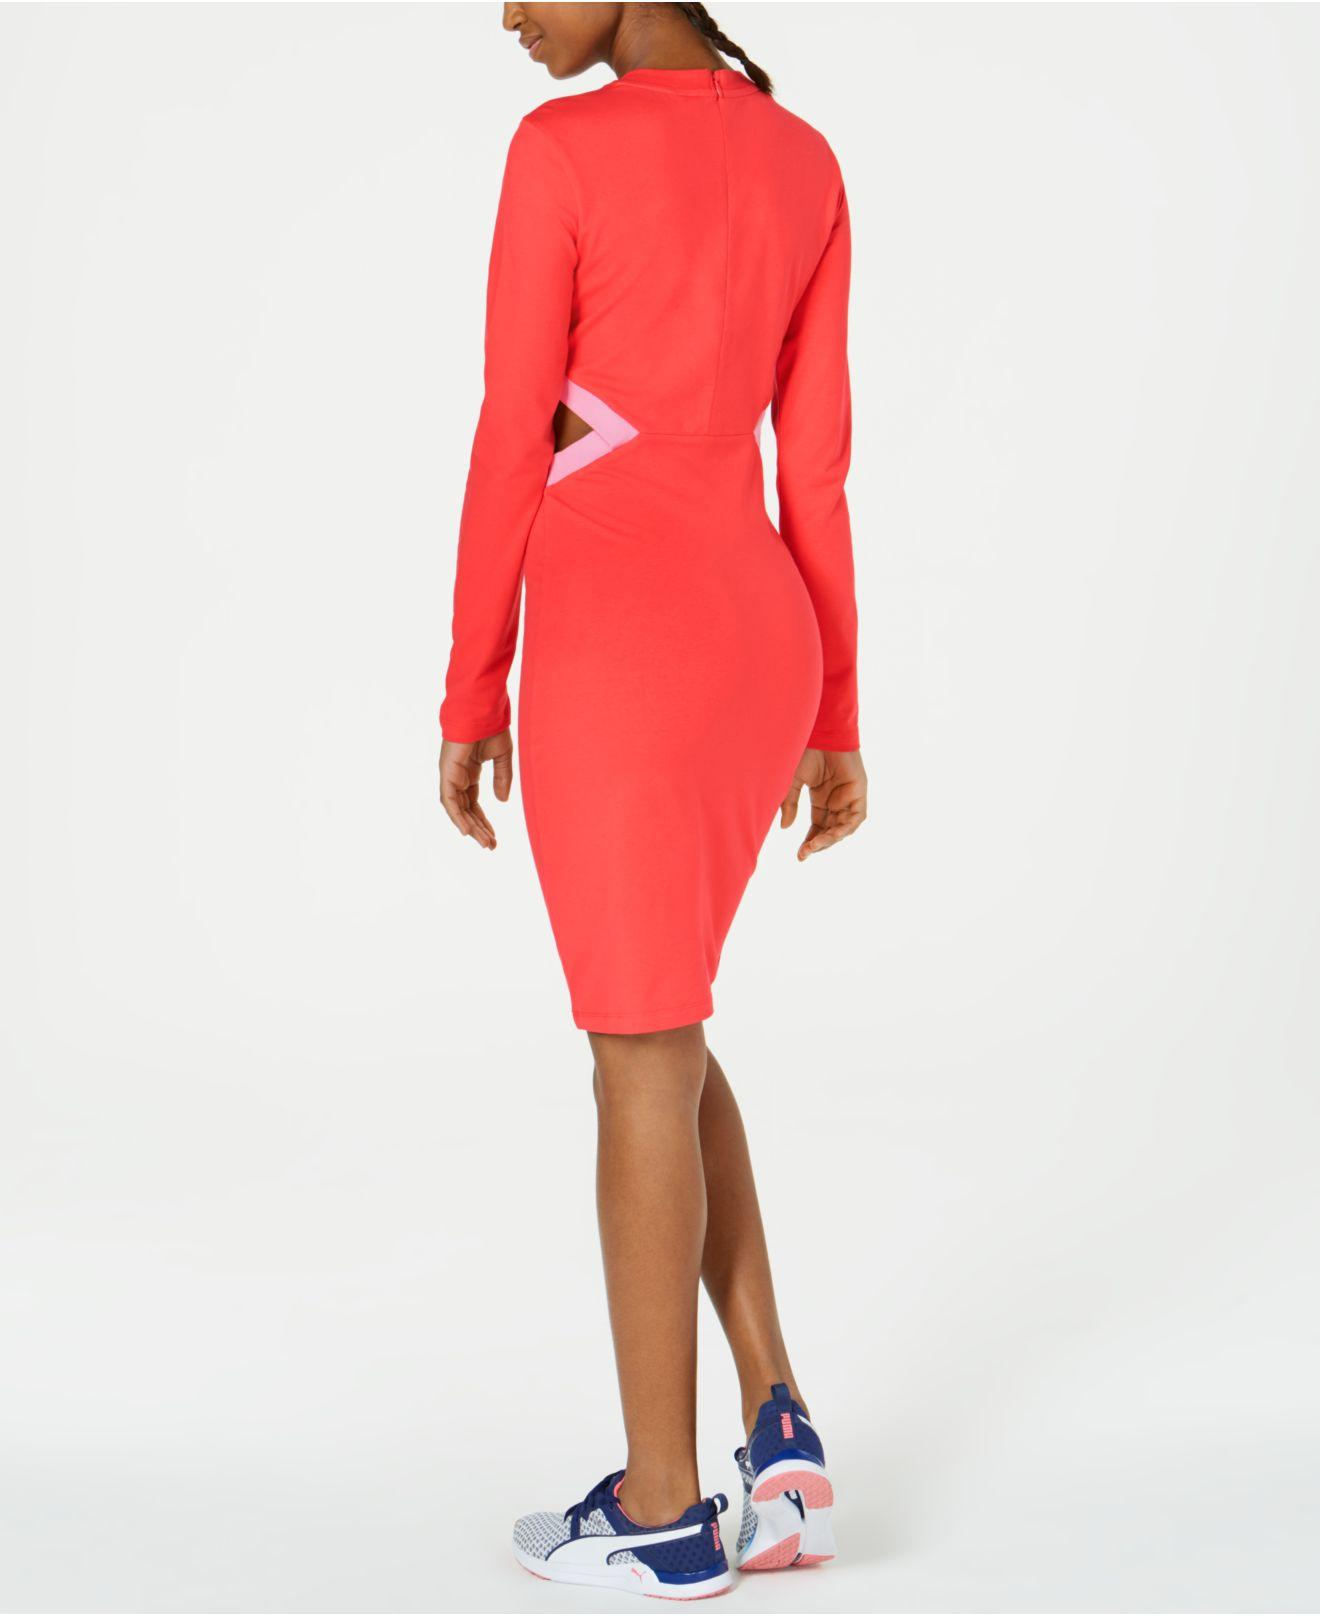 baa650646 Lyst - PUMA Classics Logo Bodycon Dress in Red